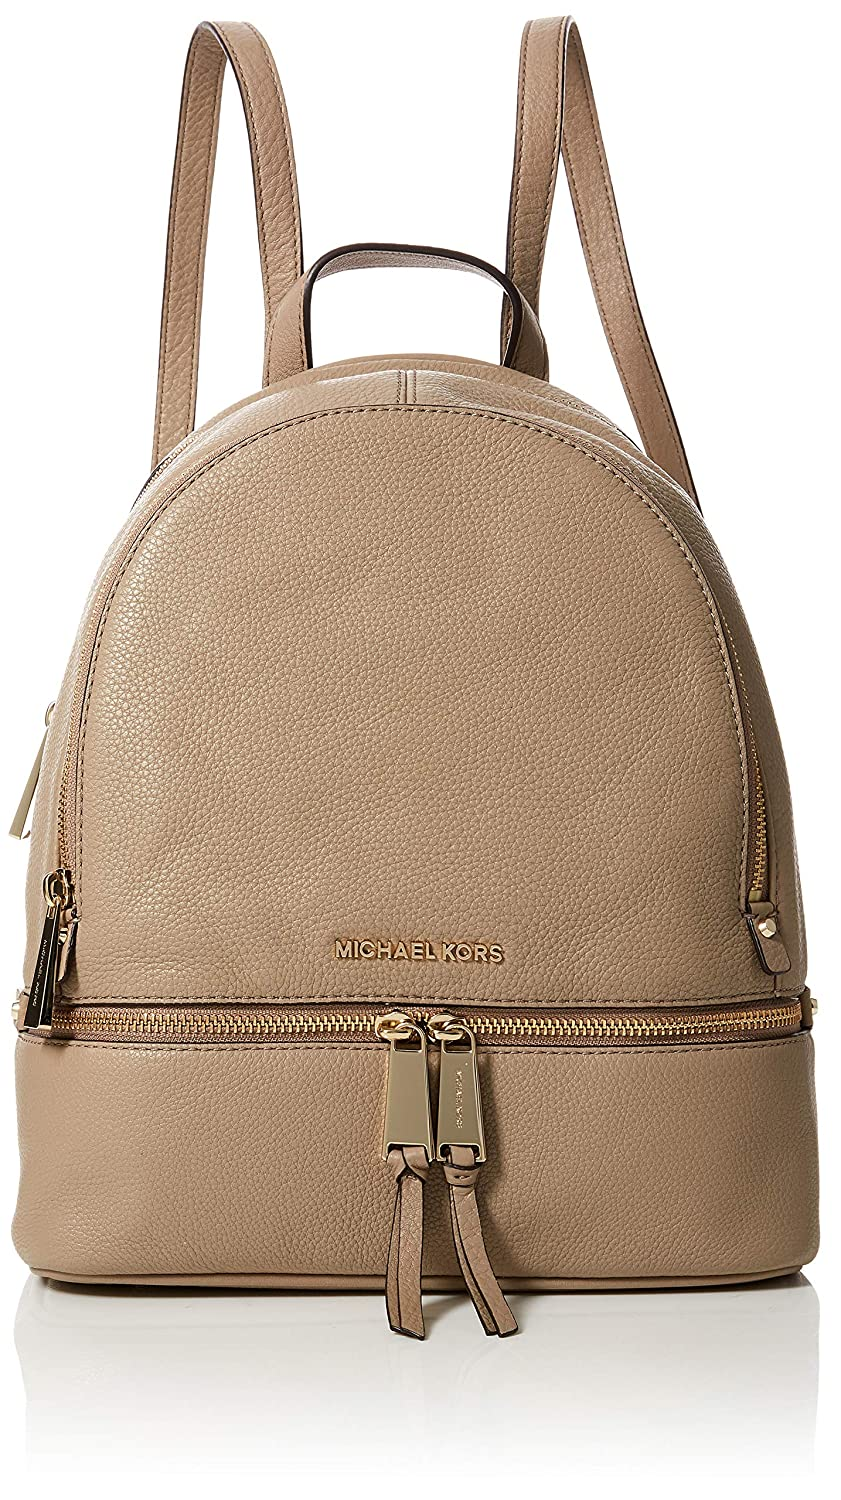 d7841a5dd84f Amazon.com: Michael Kors Womens Rhea Zip Backpack Handbag Beige (TRUFFLE):  Shoes